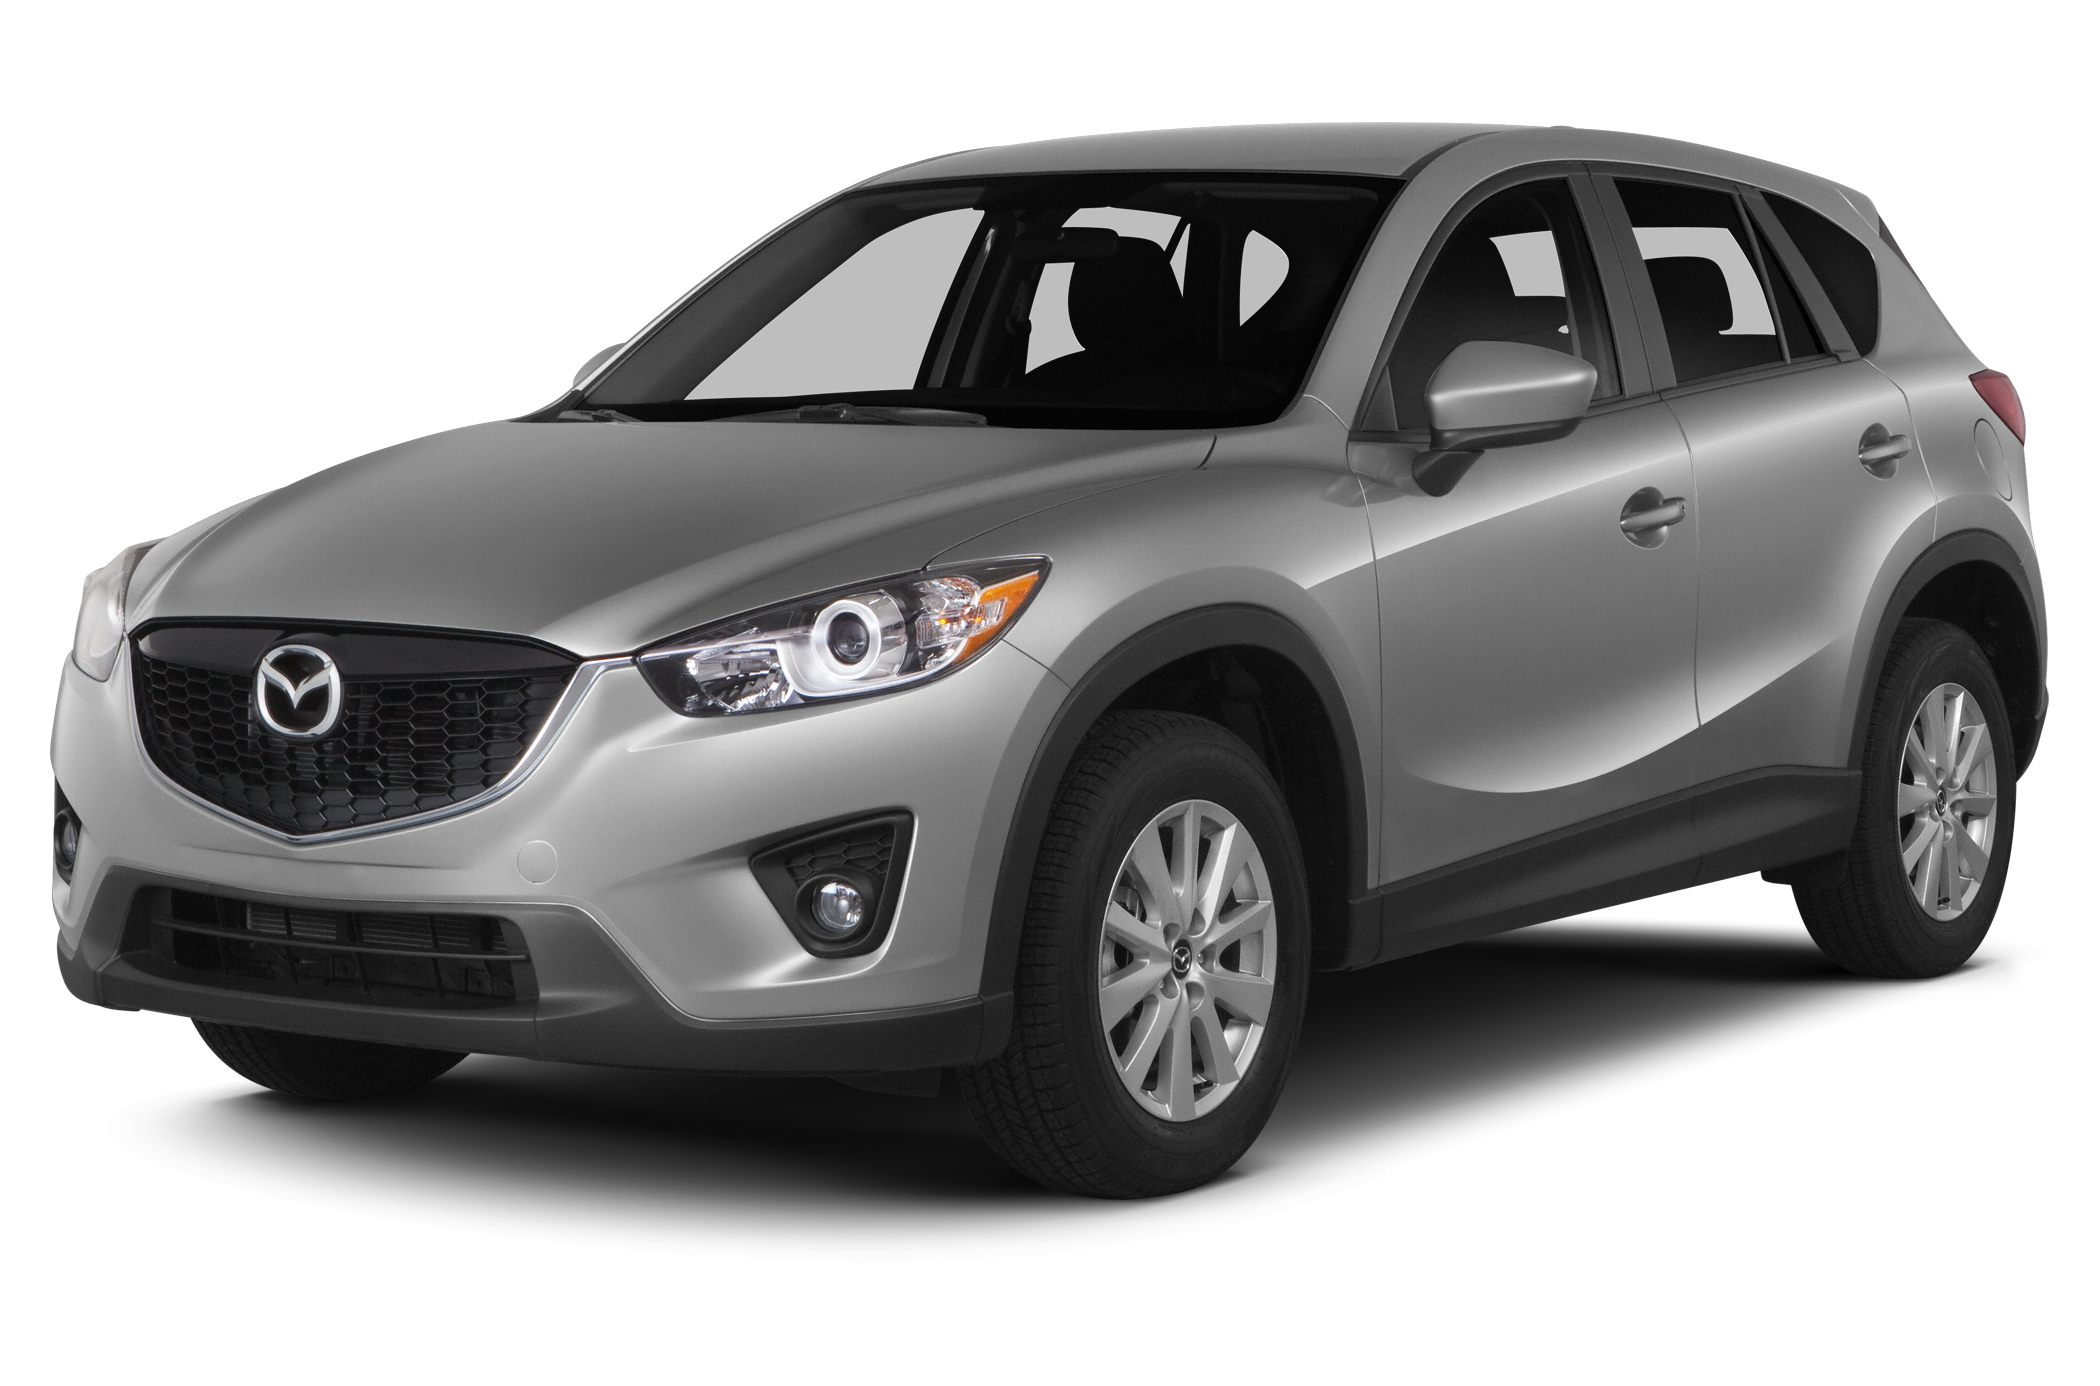 2015 Mazda CX-5 Grand Touring SUV for sale in Ridgeland for $28,900 with 16,286 miles